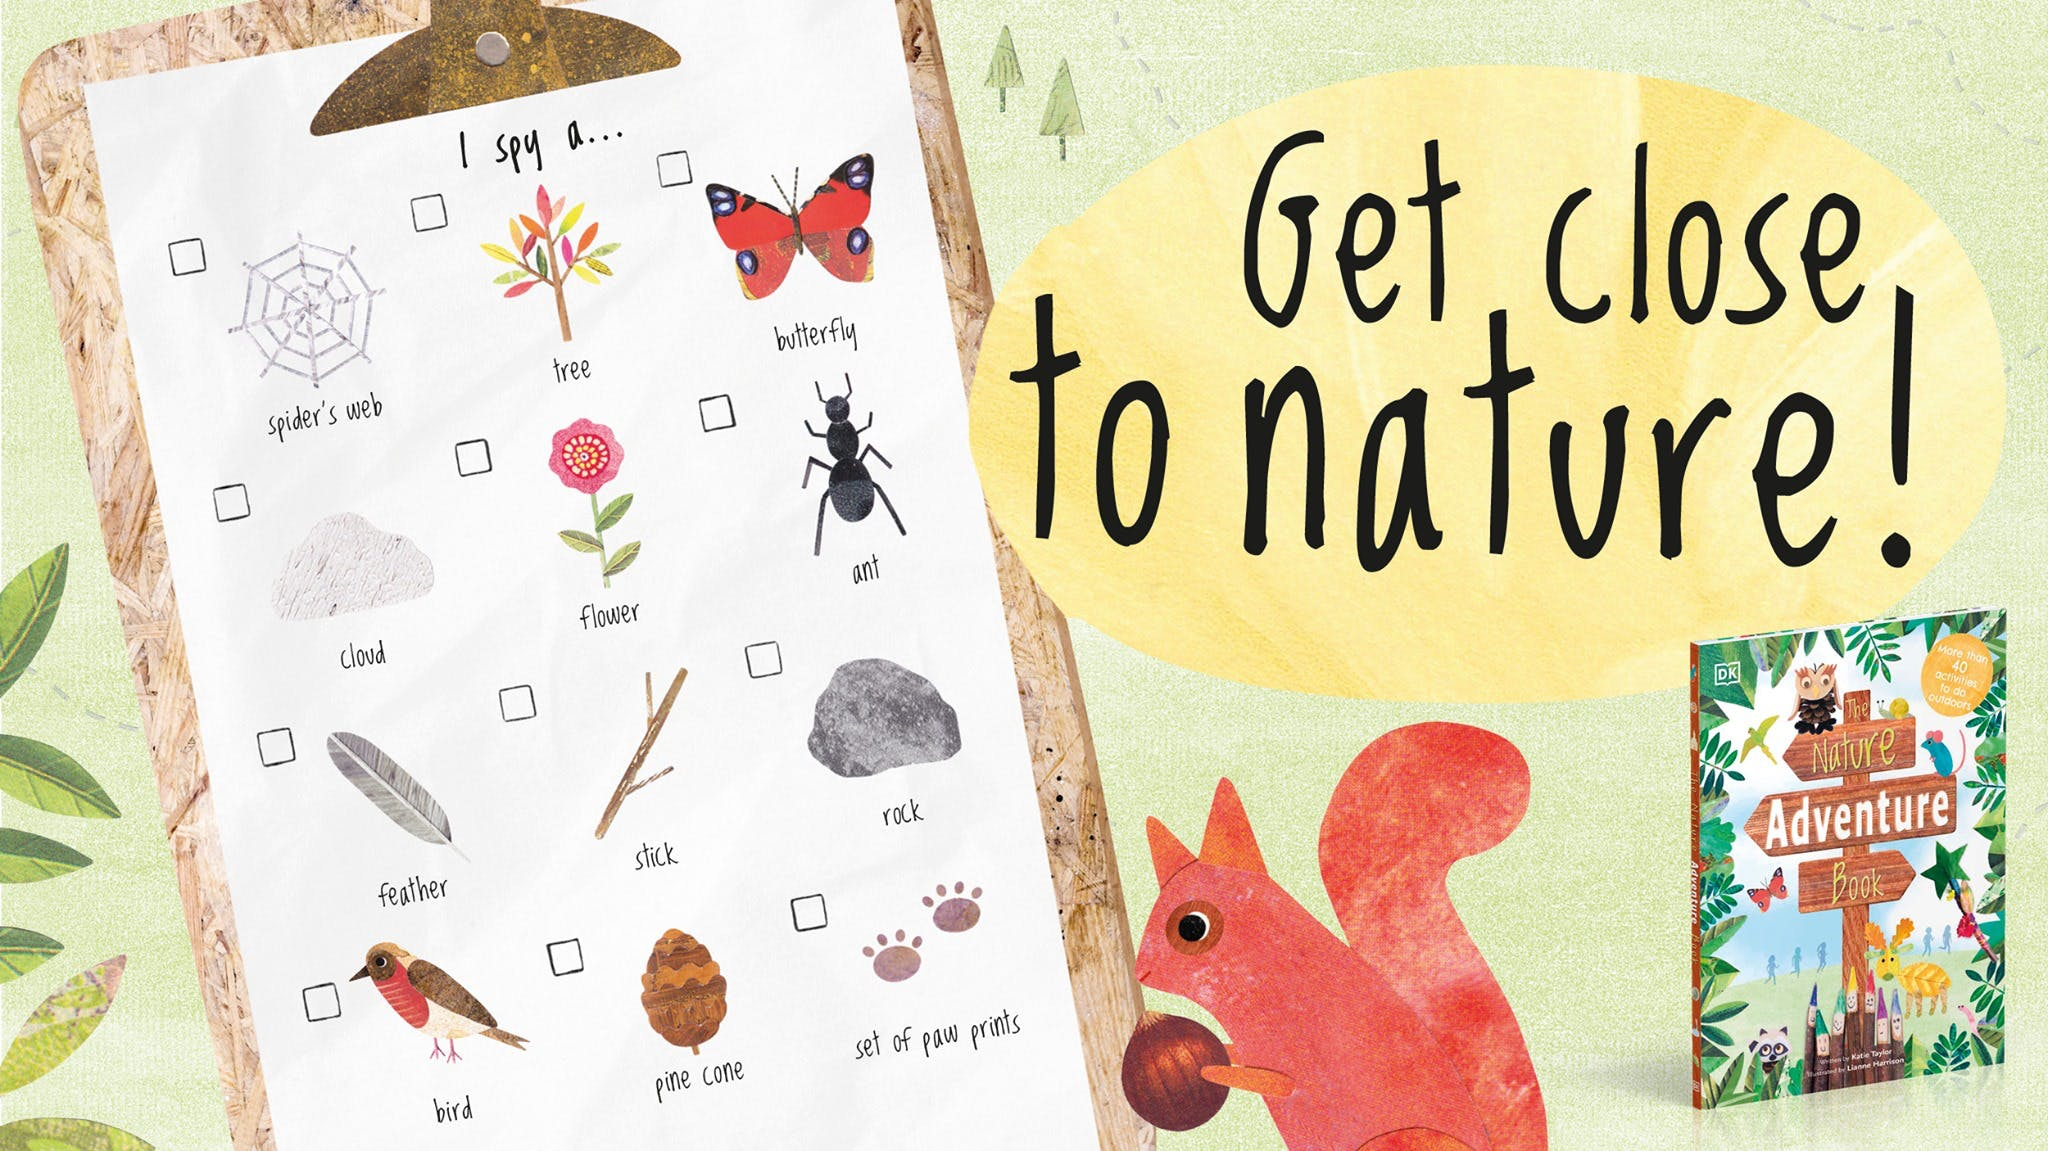 The Nature Adventure Book activity pack